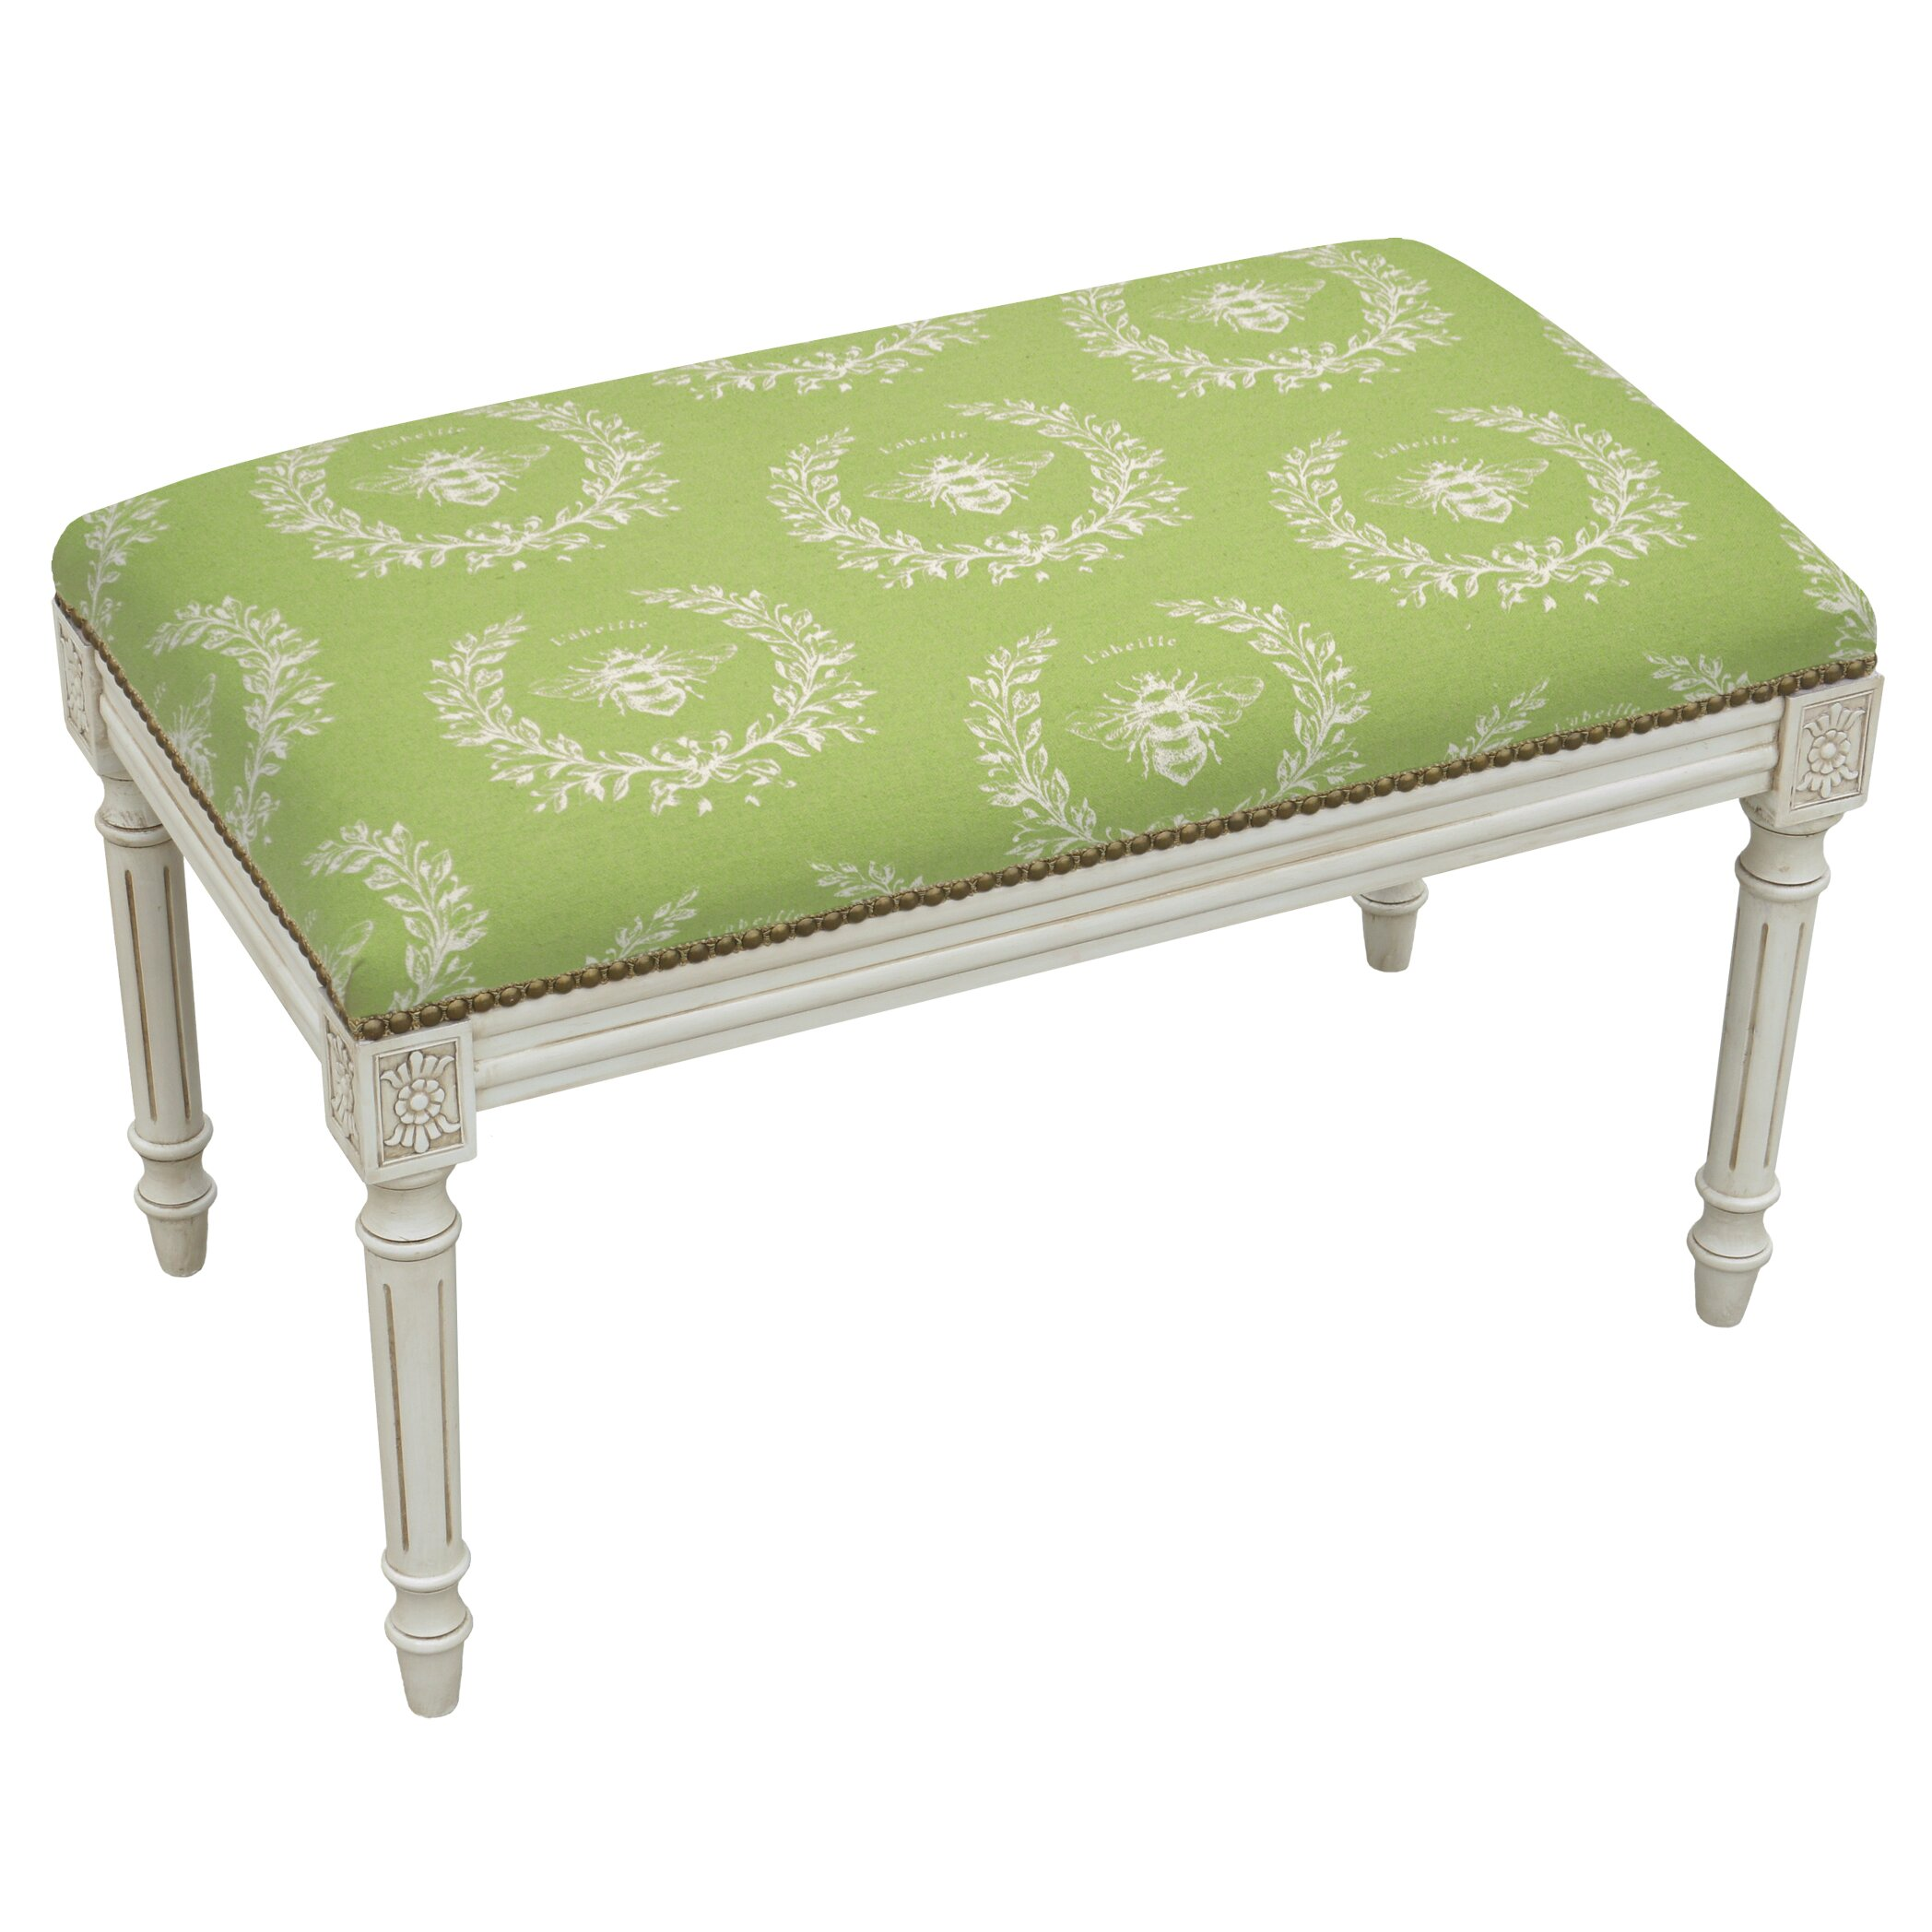 123 Creations French Upholstered And Wood Bench & Reviews Wayfair. Full resolution‎  image, nominally Width 2096 Height 2096 pixels, image with #778942.